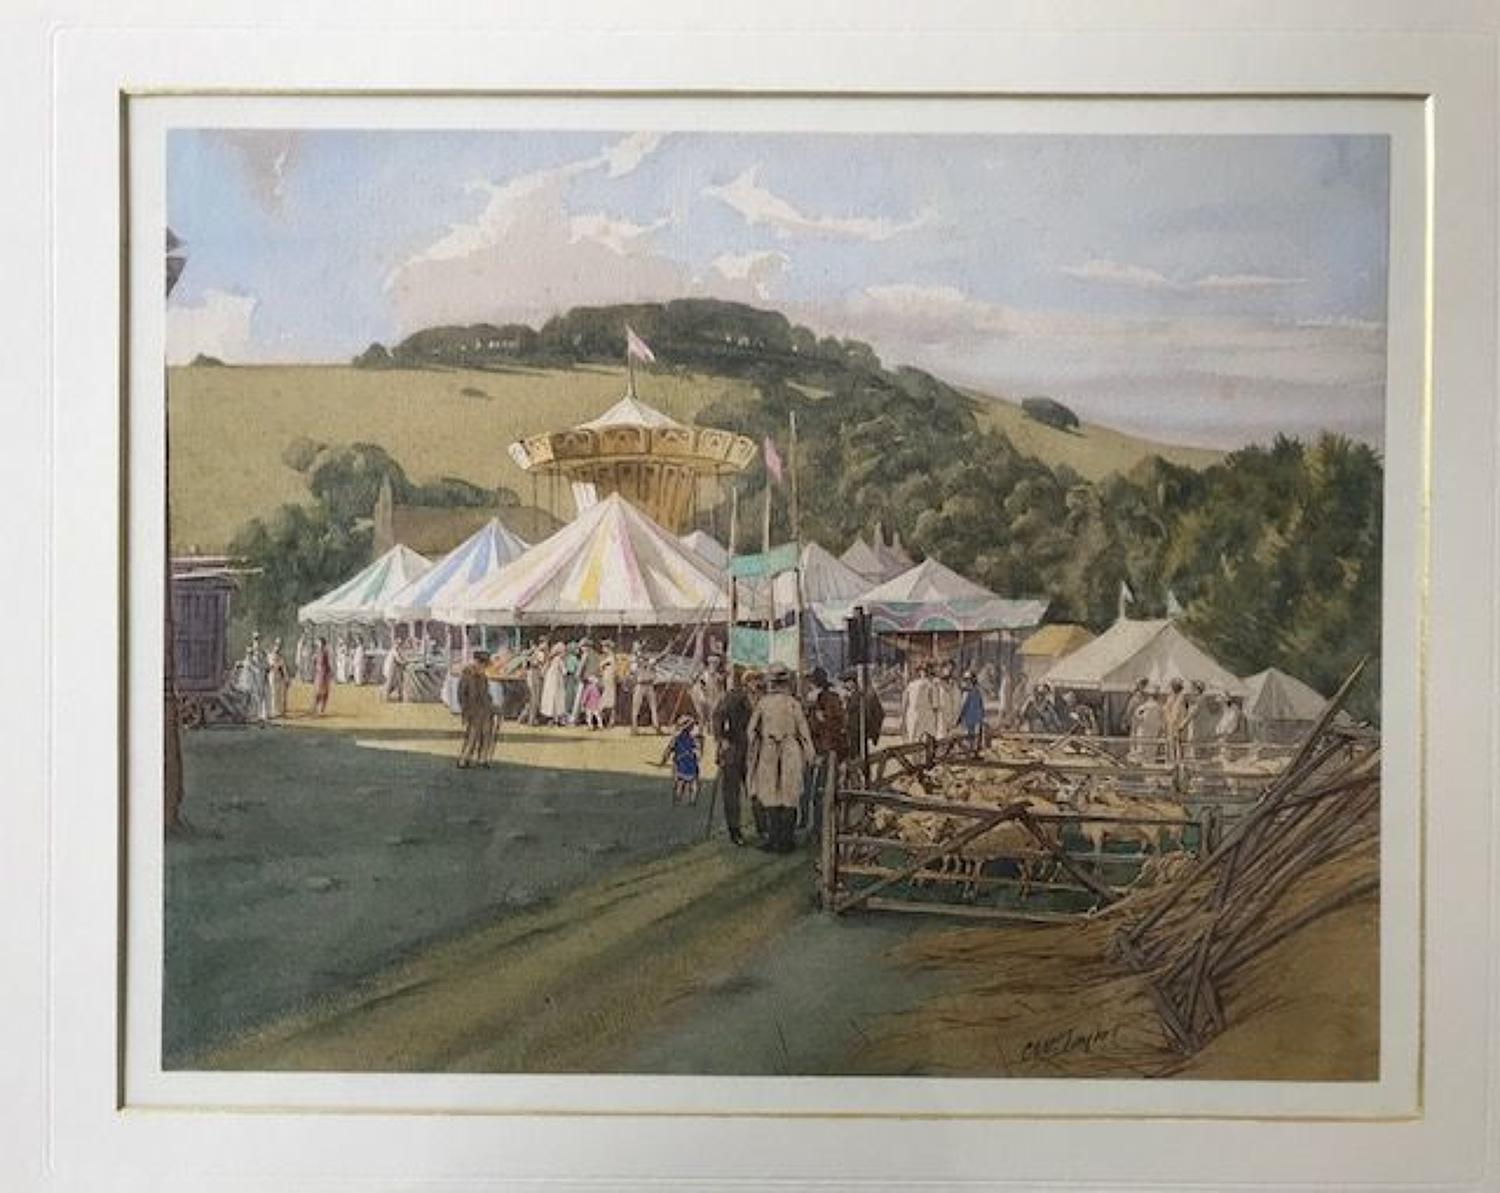 'Findon Sheep Fair by Charles W.Taylor circa 1950